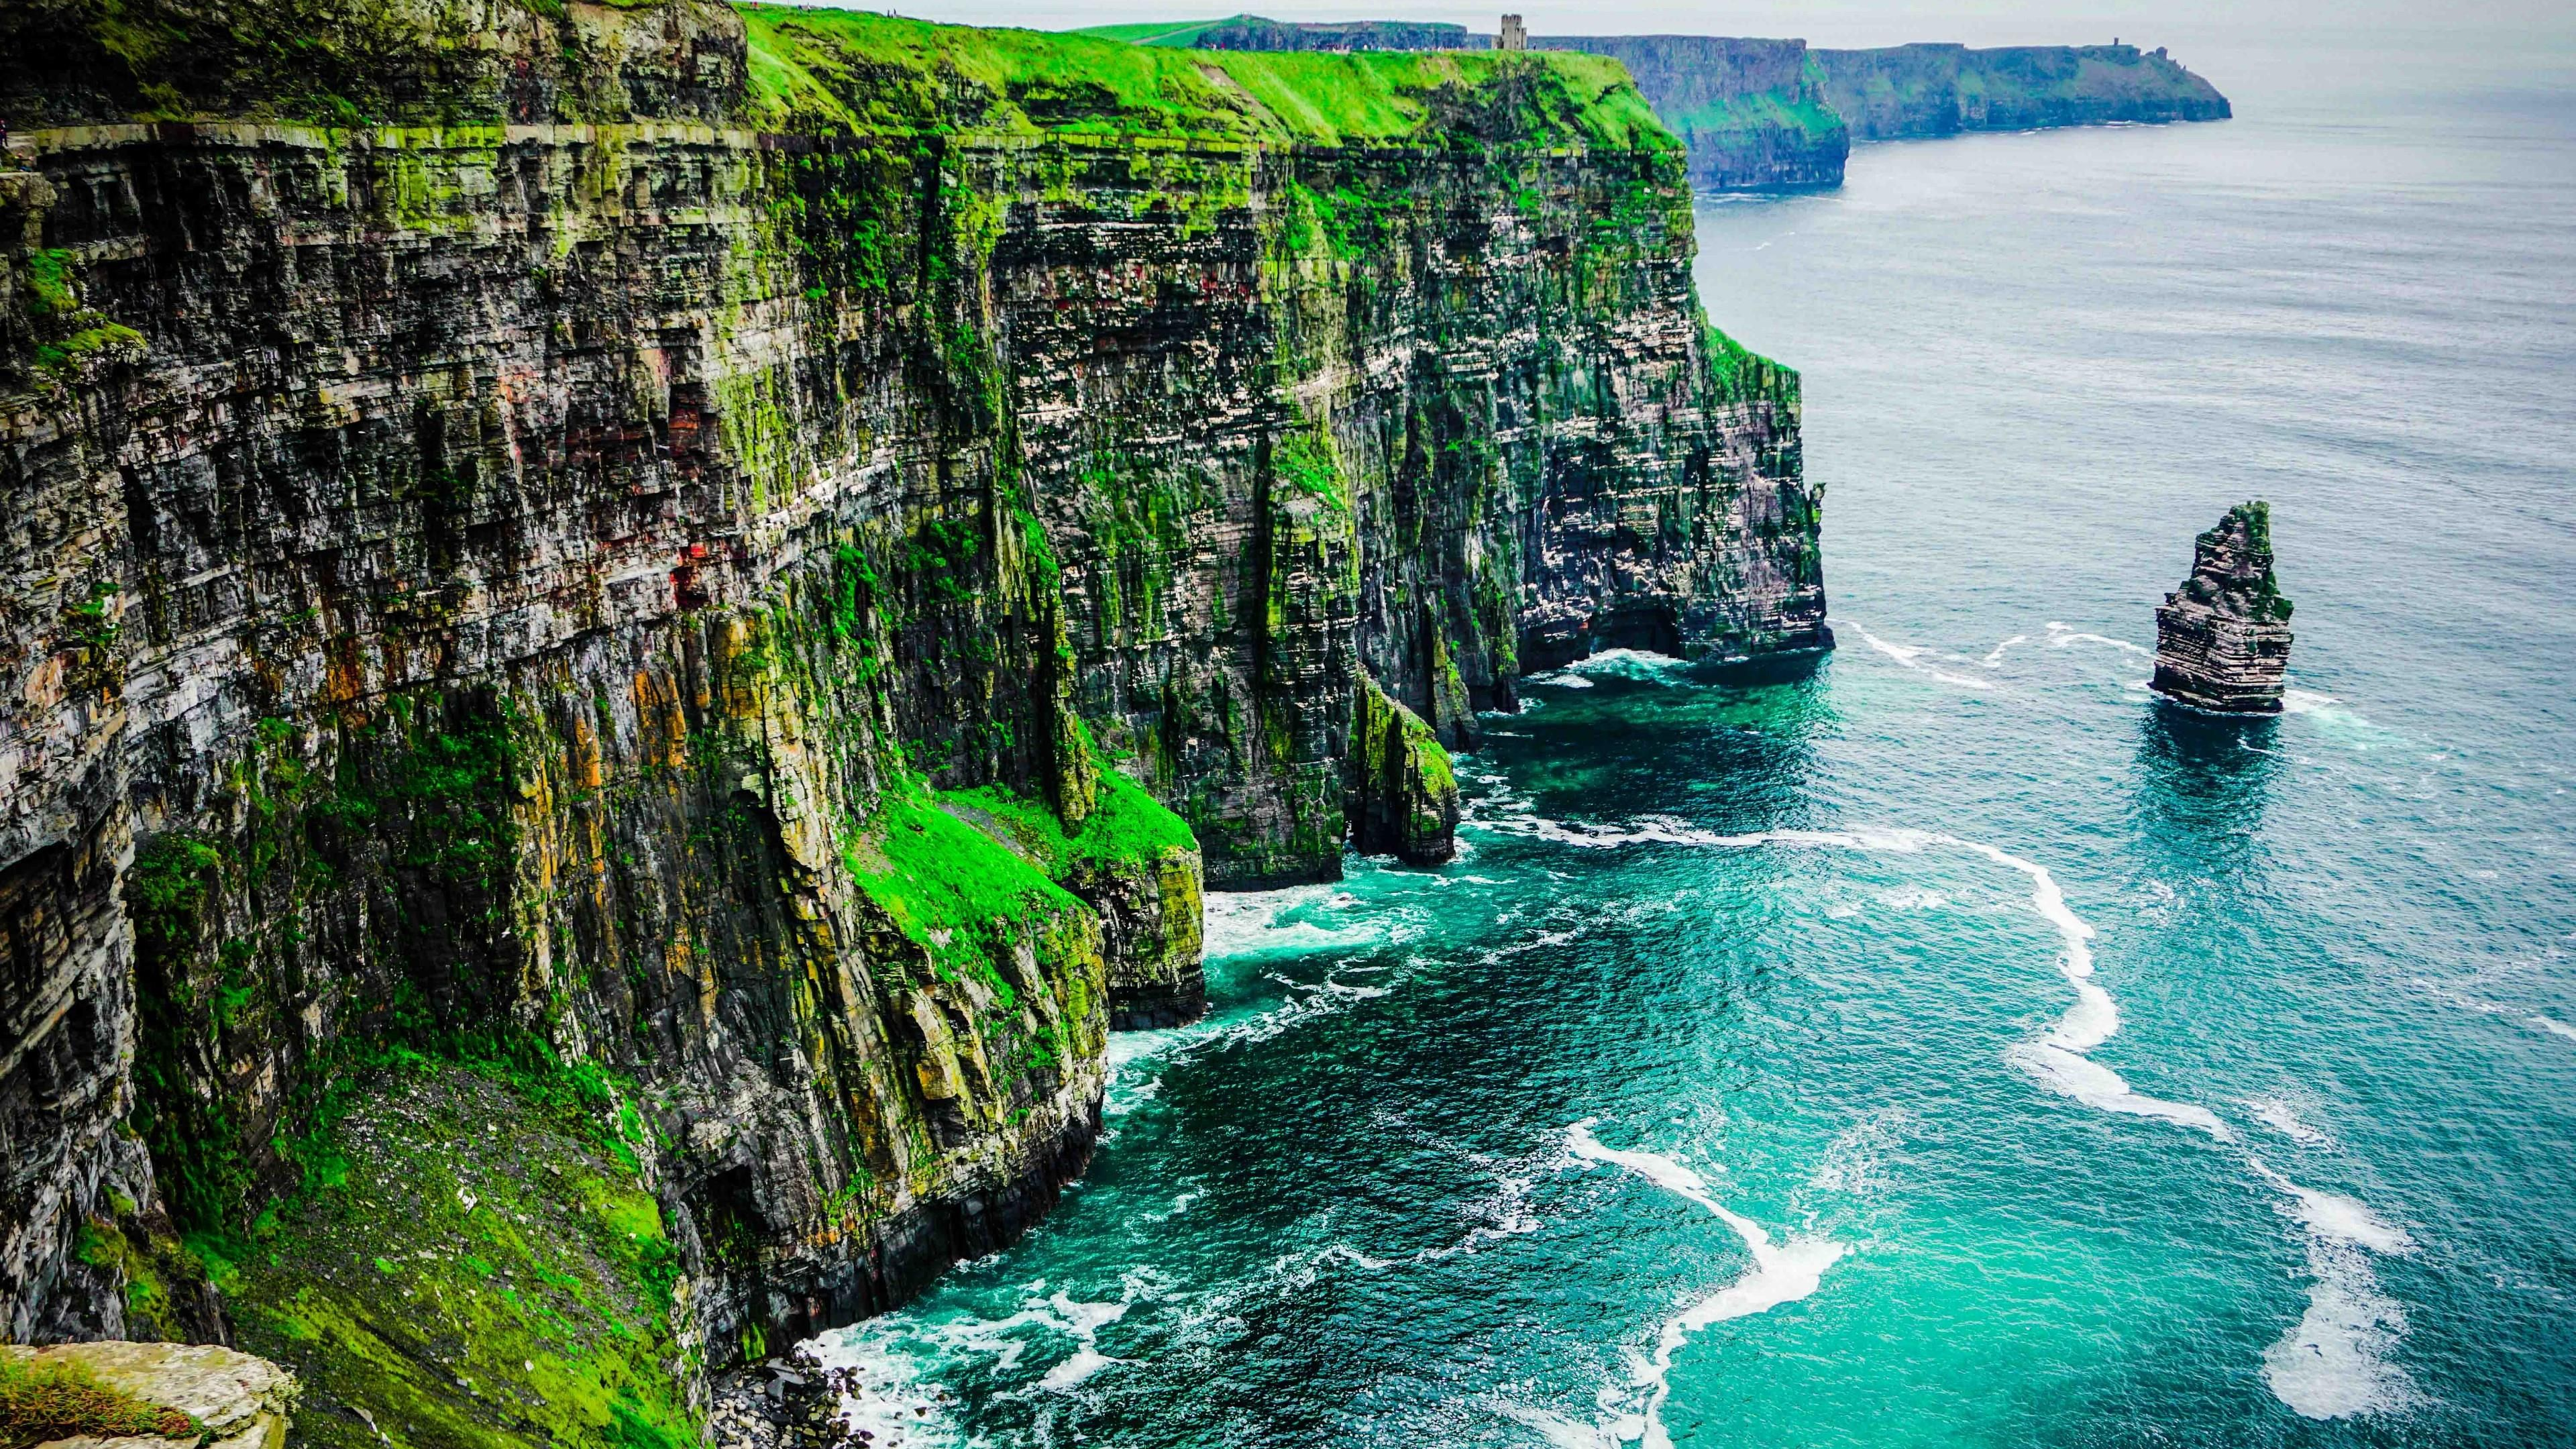 Free Download Cliffs Of Moher Wallpaper Hd Cliffs Of Moher